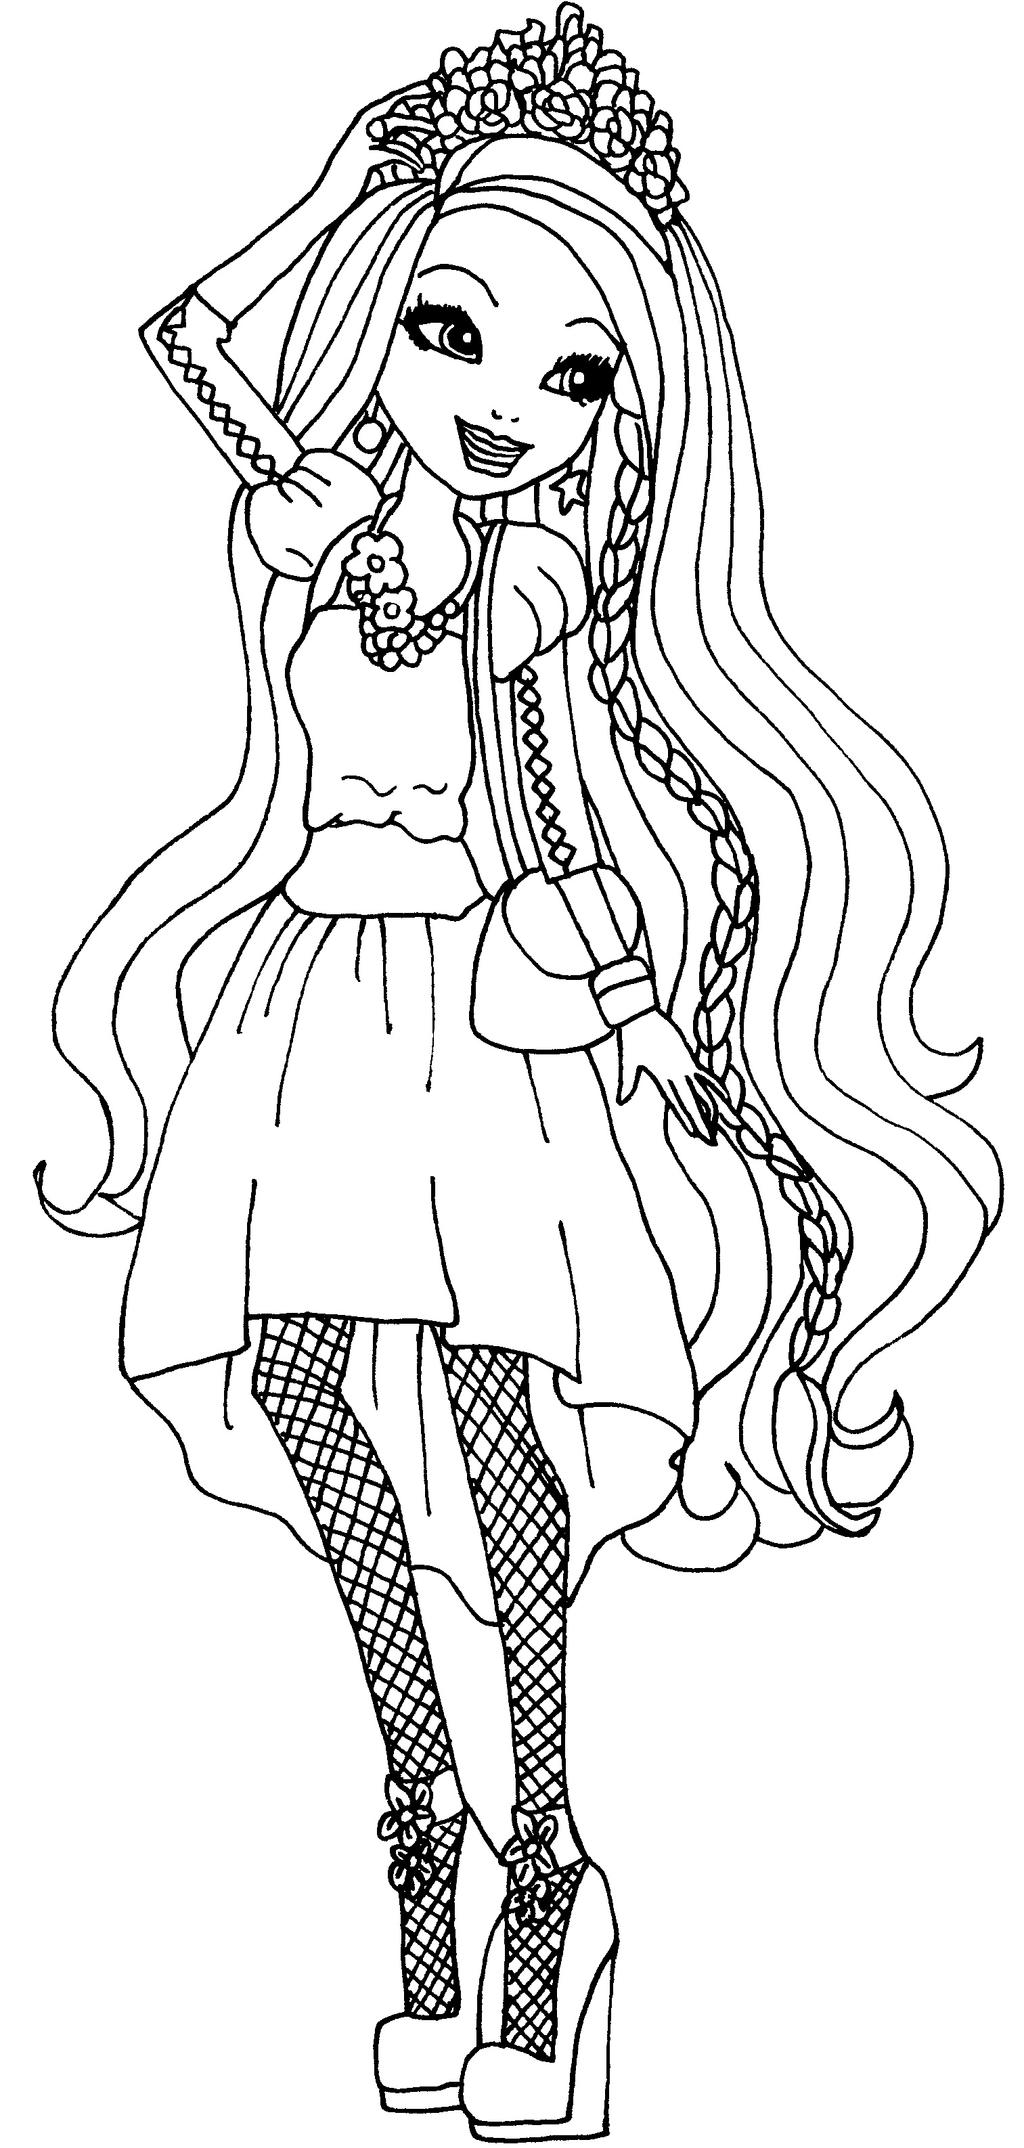 holly ohair coloring pages - photo#3